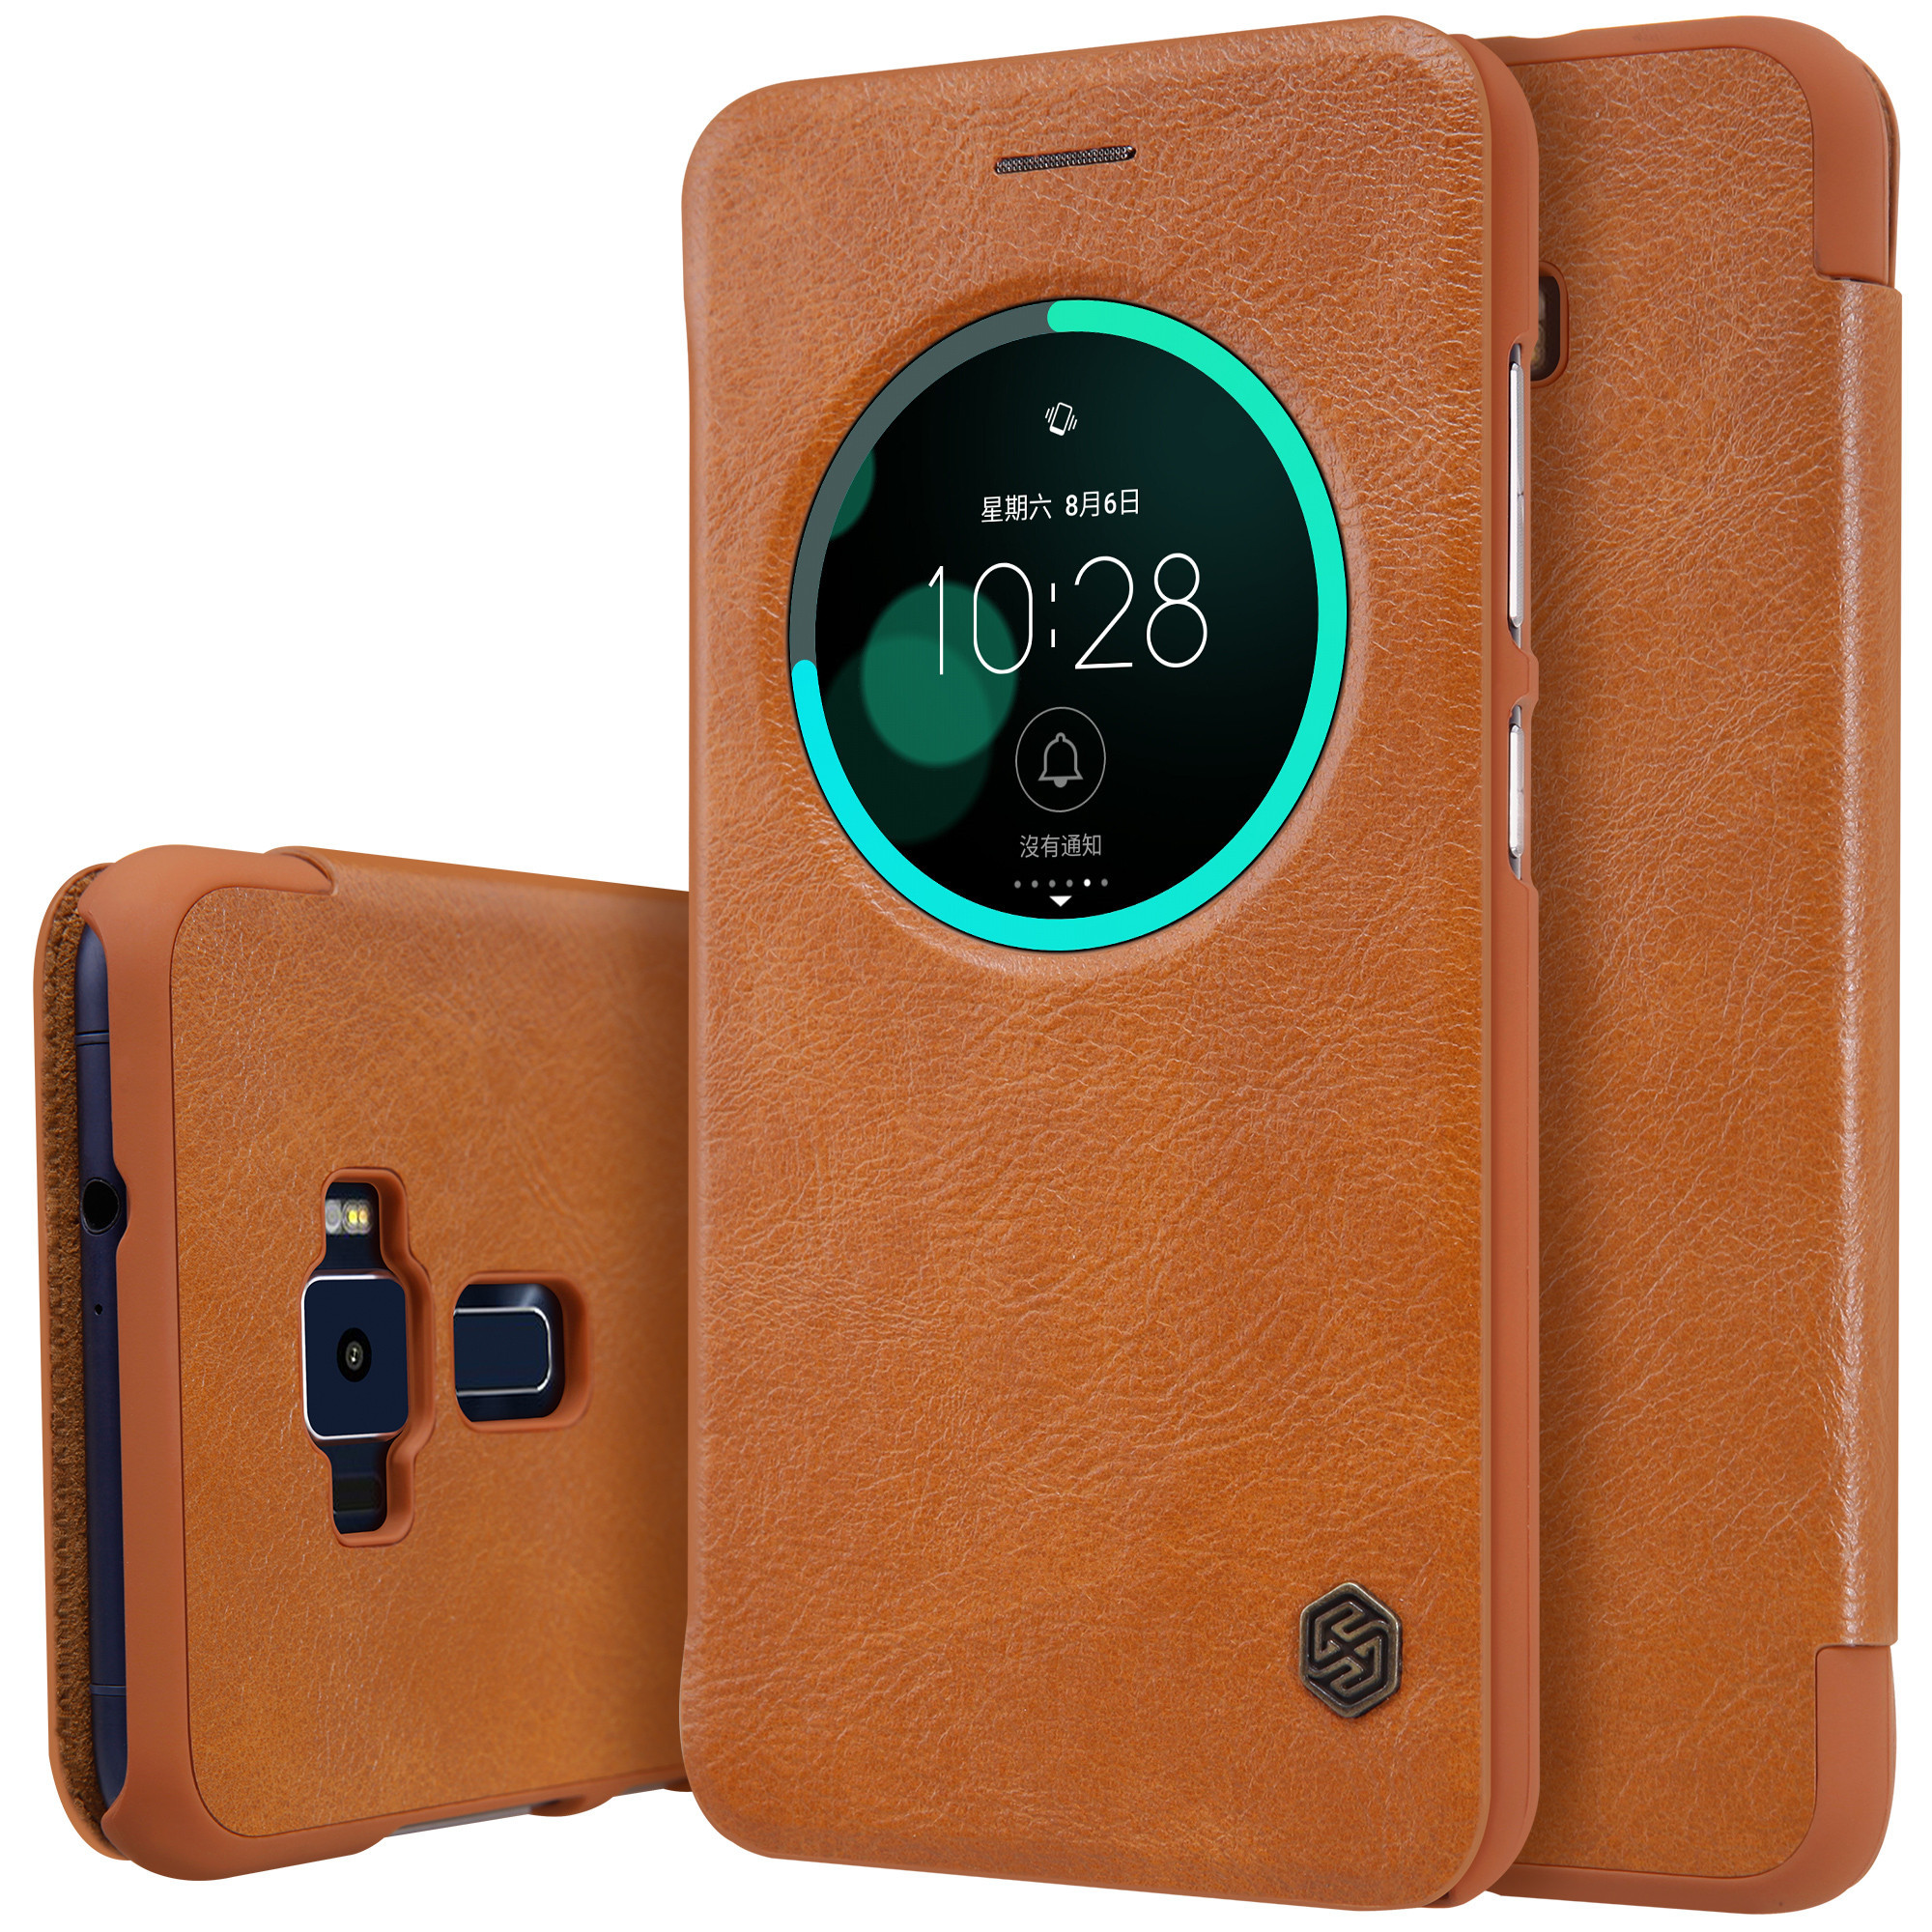 ... Nillkin Qin Sleep Flip Leather with Smart View Window Hard PlasticBack Cover Phone Case for Asus ...